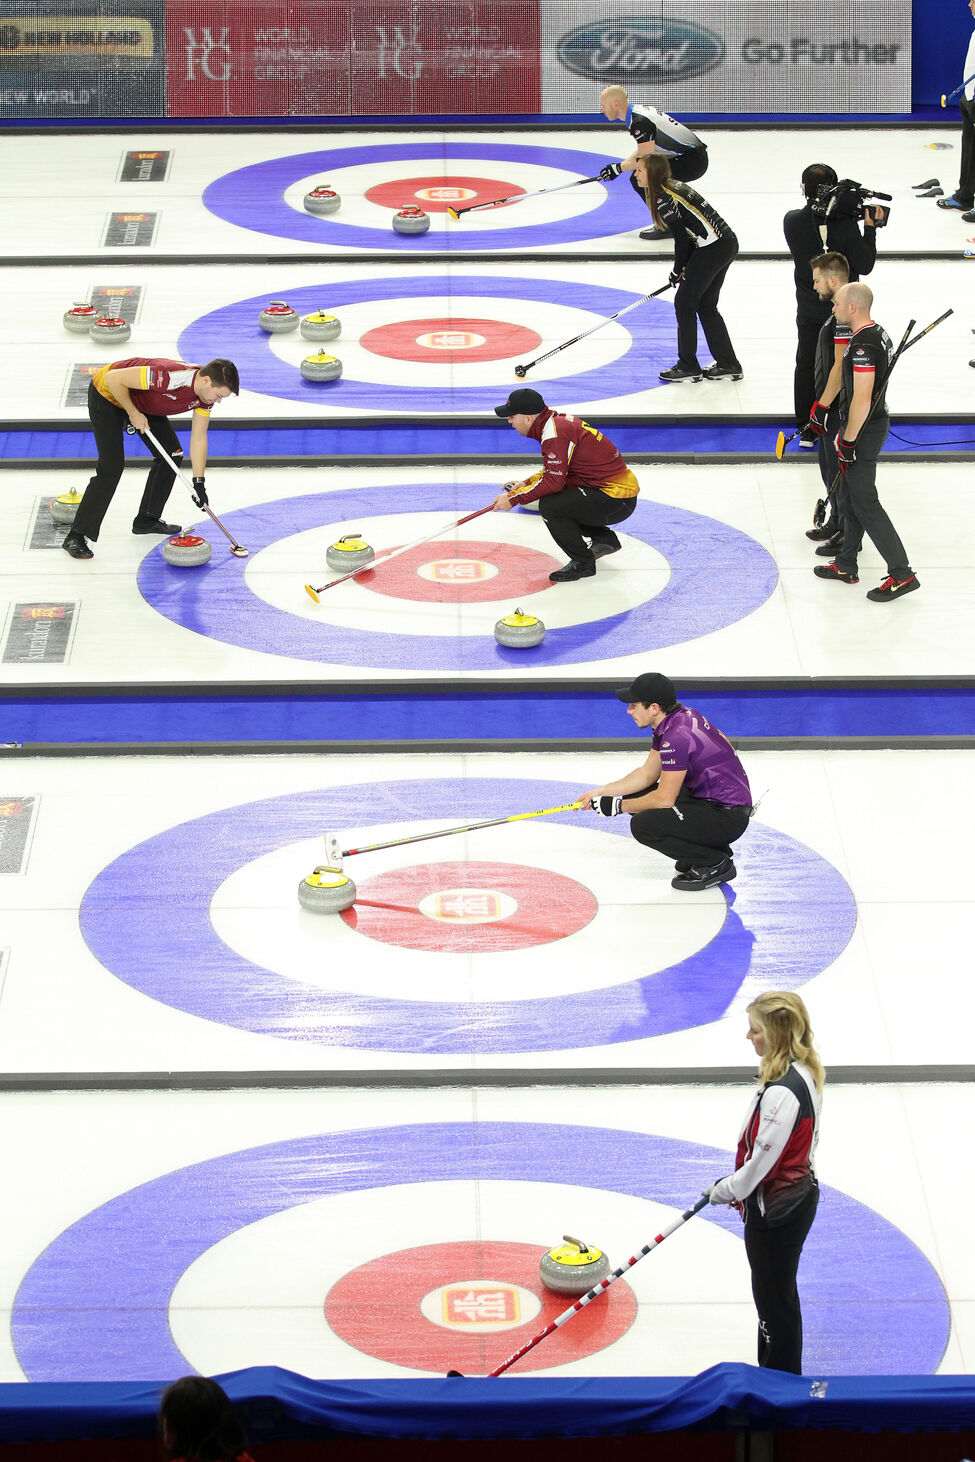 The afternoon draw of the Home Hardware Canada Cup of Curling takes place on Wednesday.